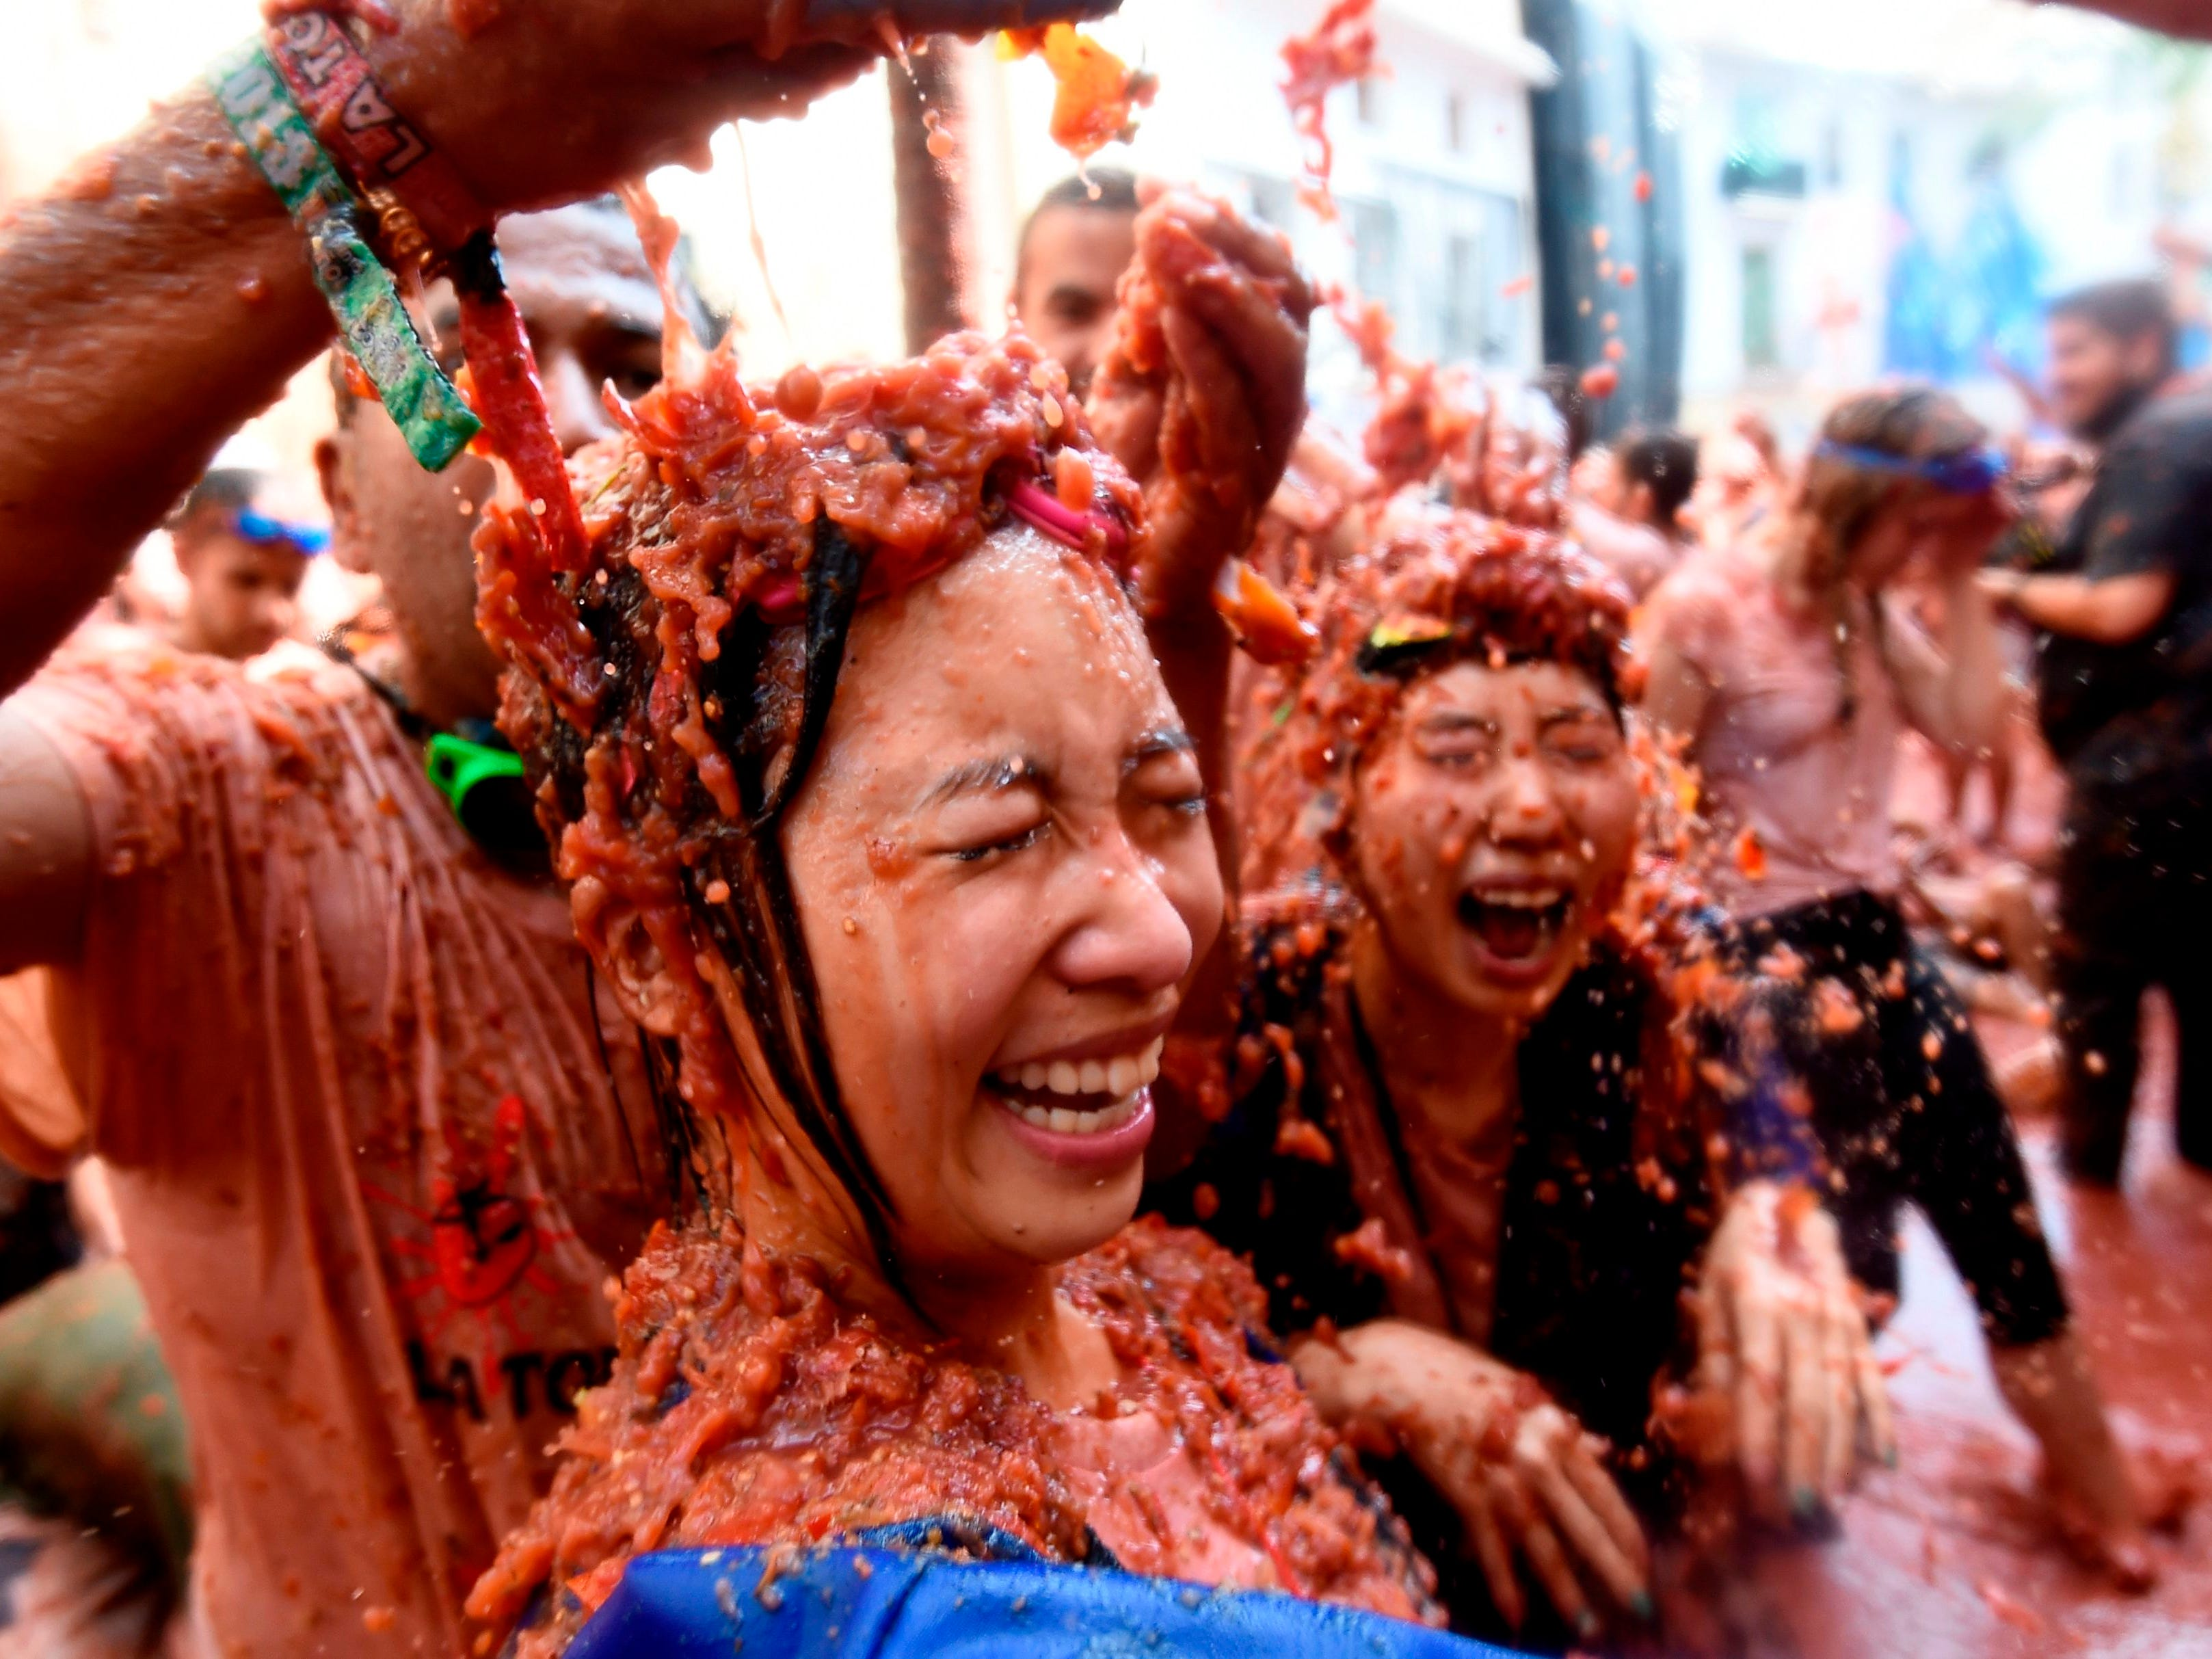 """Revelers are covered with smashed tomatoes during the Tomatina festival in Bunol, Spain, Aug. 29, 2018. The iconic annual fiesta that takes place on the last Wednesday of August and celebrates its 73rd edition has been billed as """"the world's biggest food fight"""" becoming a major draw for tourists."""